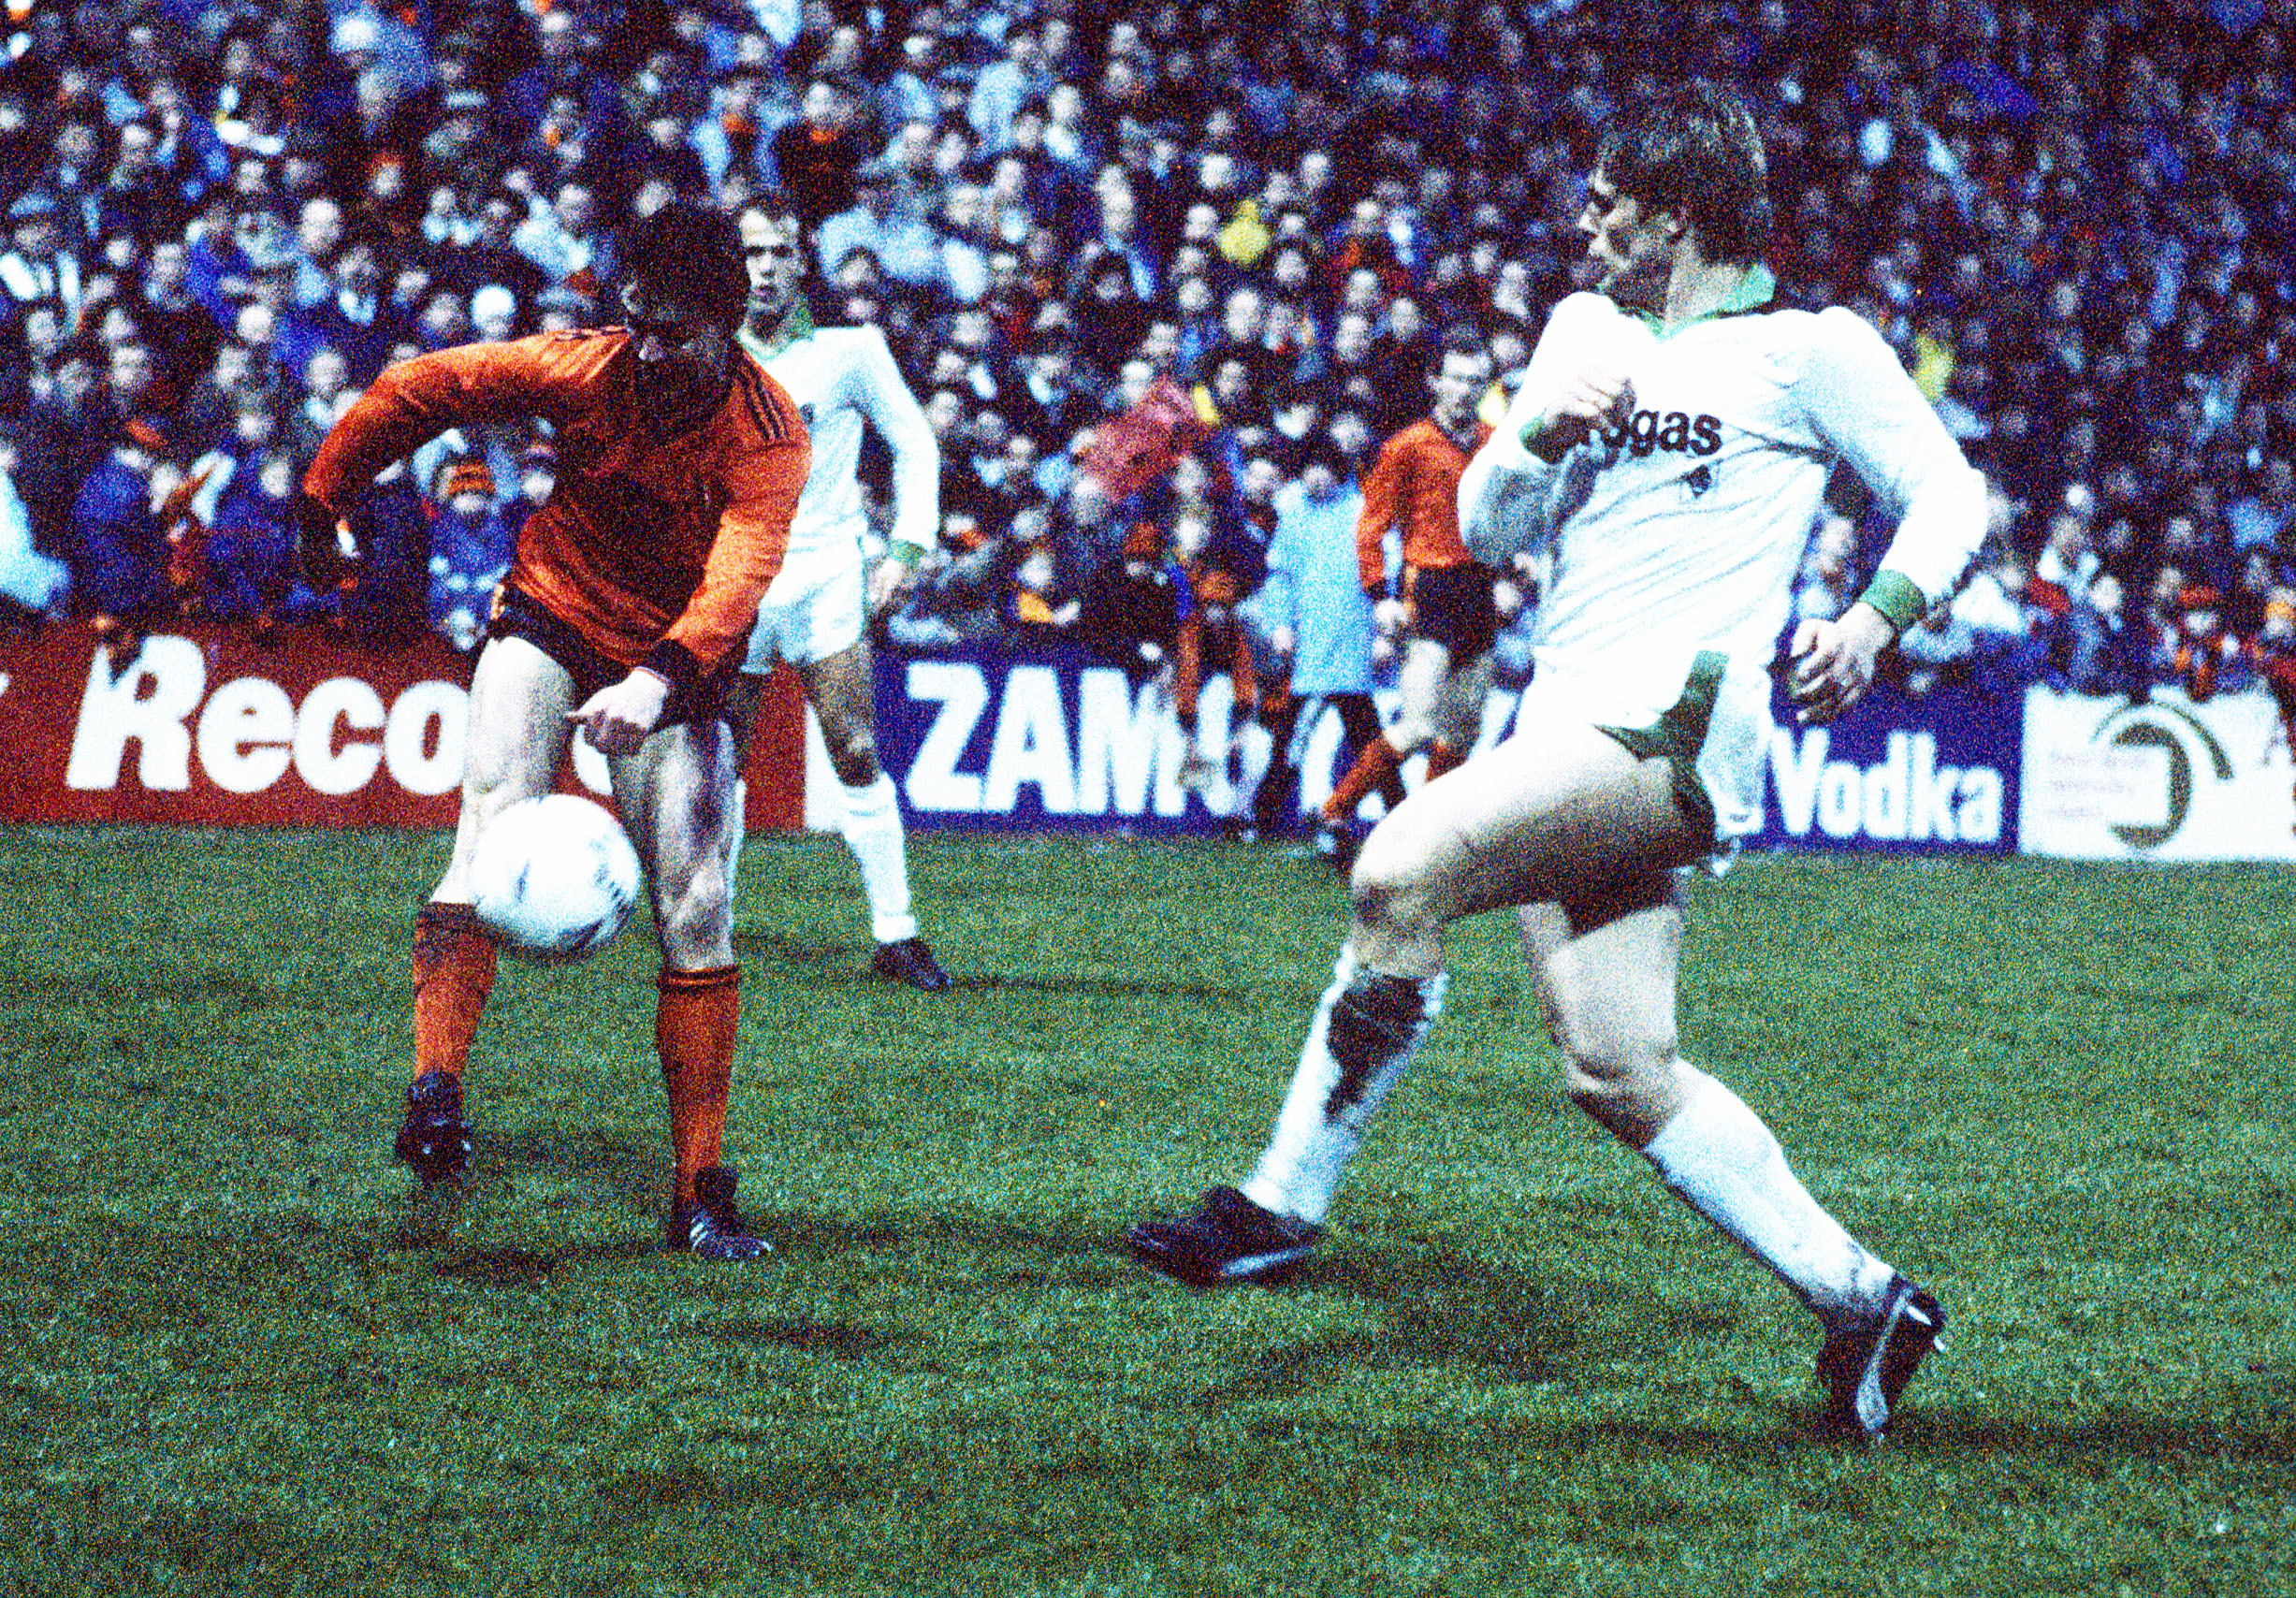 Pictures taken from United's semi-final clash with German side Gladbach on April 8 1987